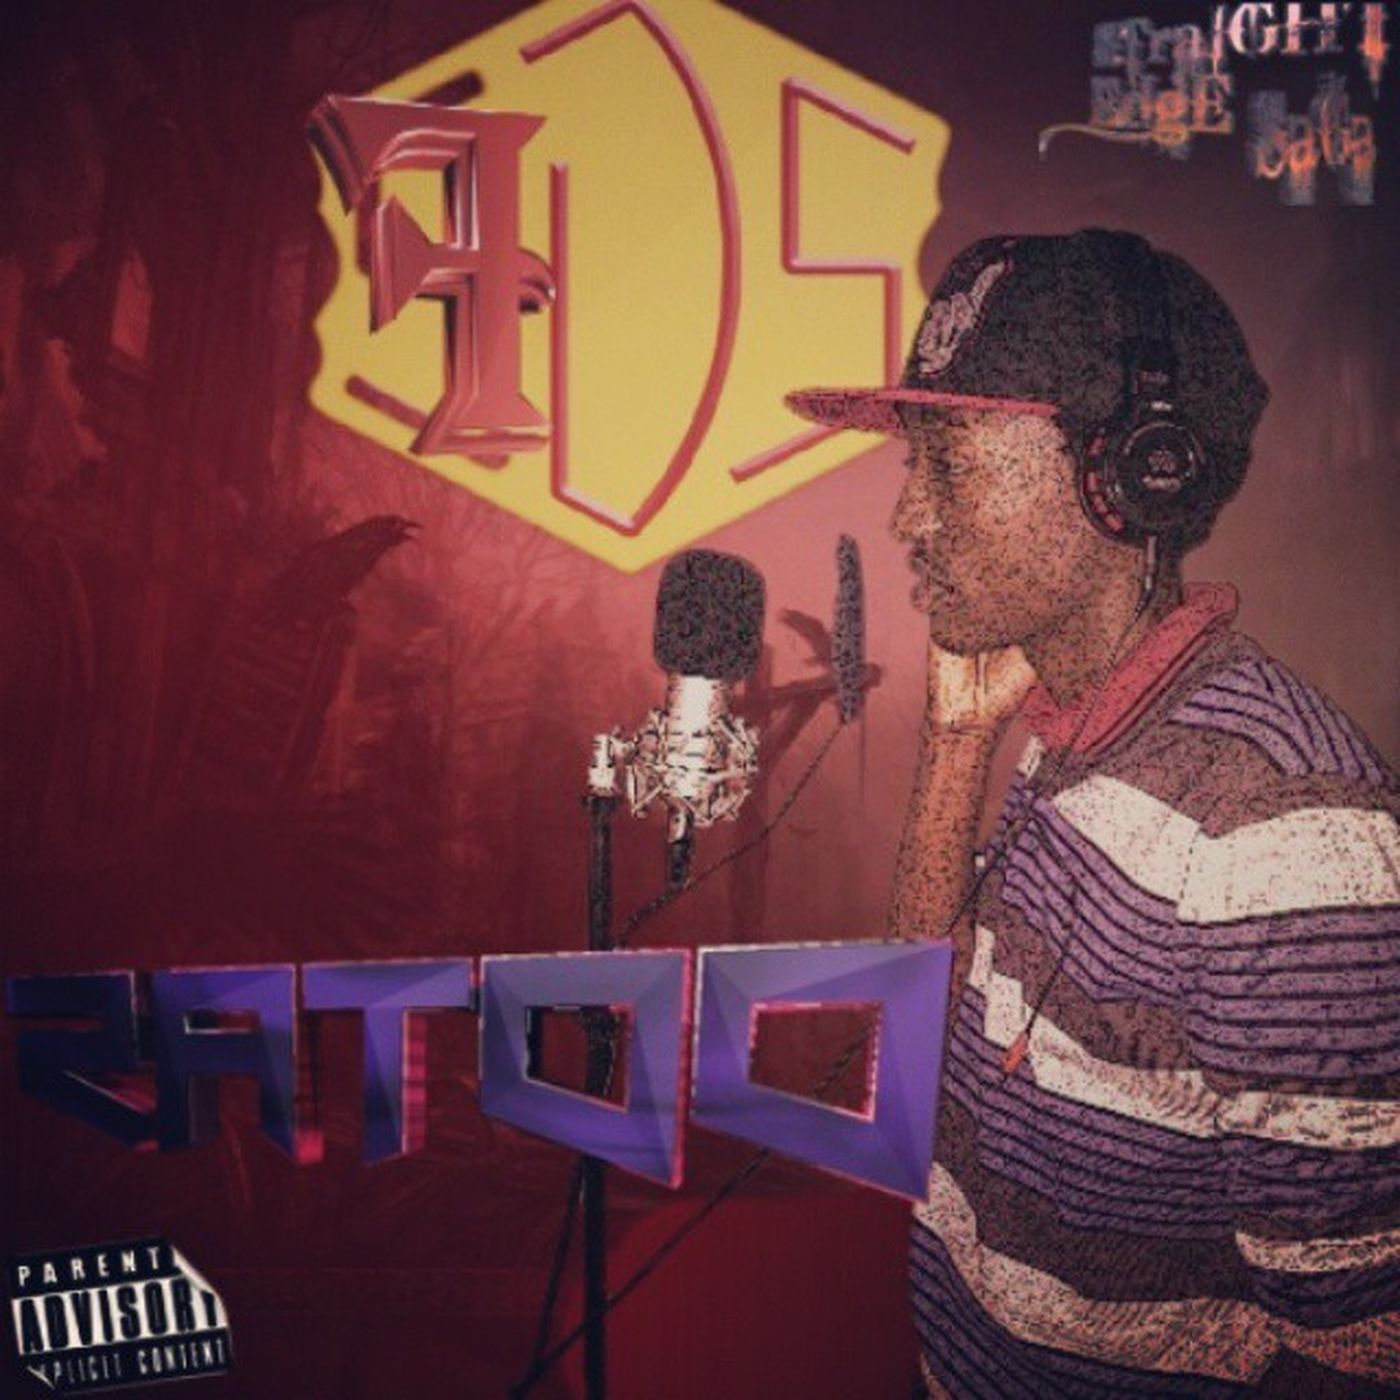 Attention EveryBody attention Please Please download my track Link Below http://www.audiomack.com/song/straight- edgegrim-gang/fdsfinna-do-something-1 SupportTheBoy Dearlybeloved Feedback Is Highly Appreciated Hey Please Download